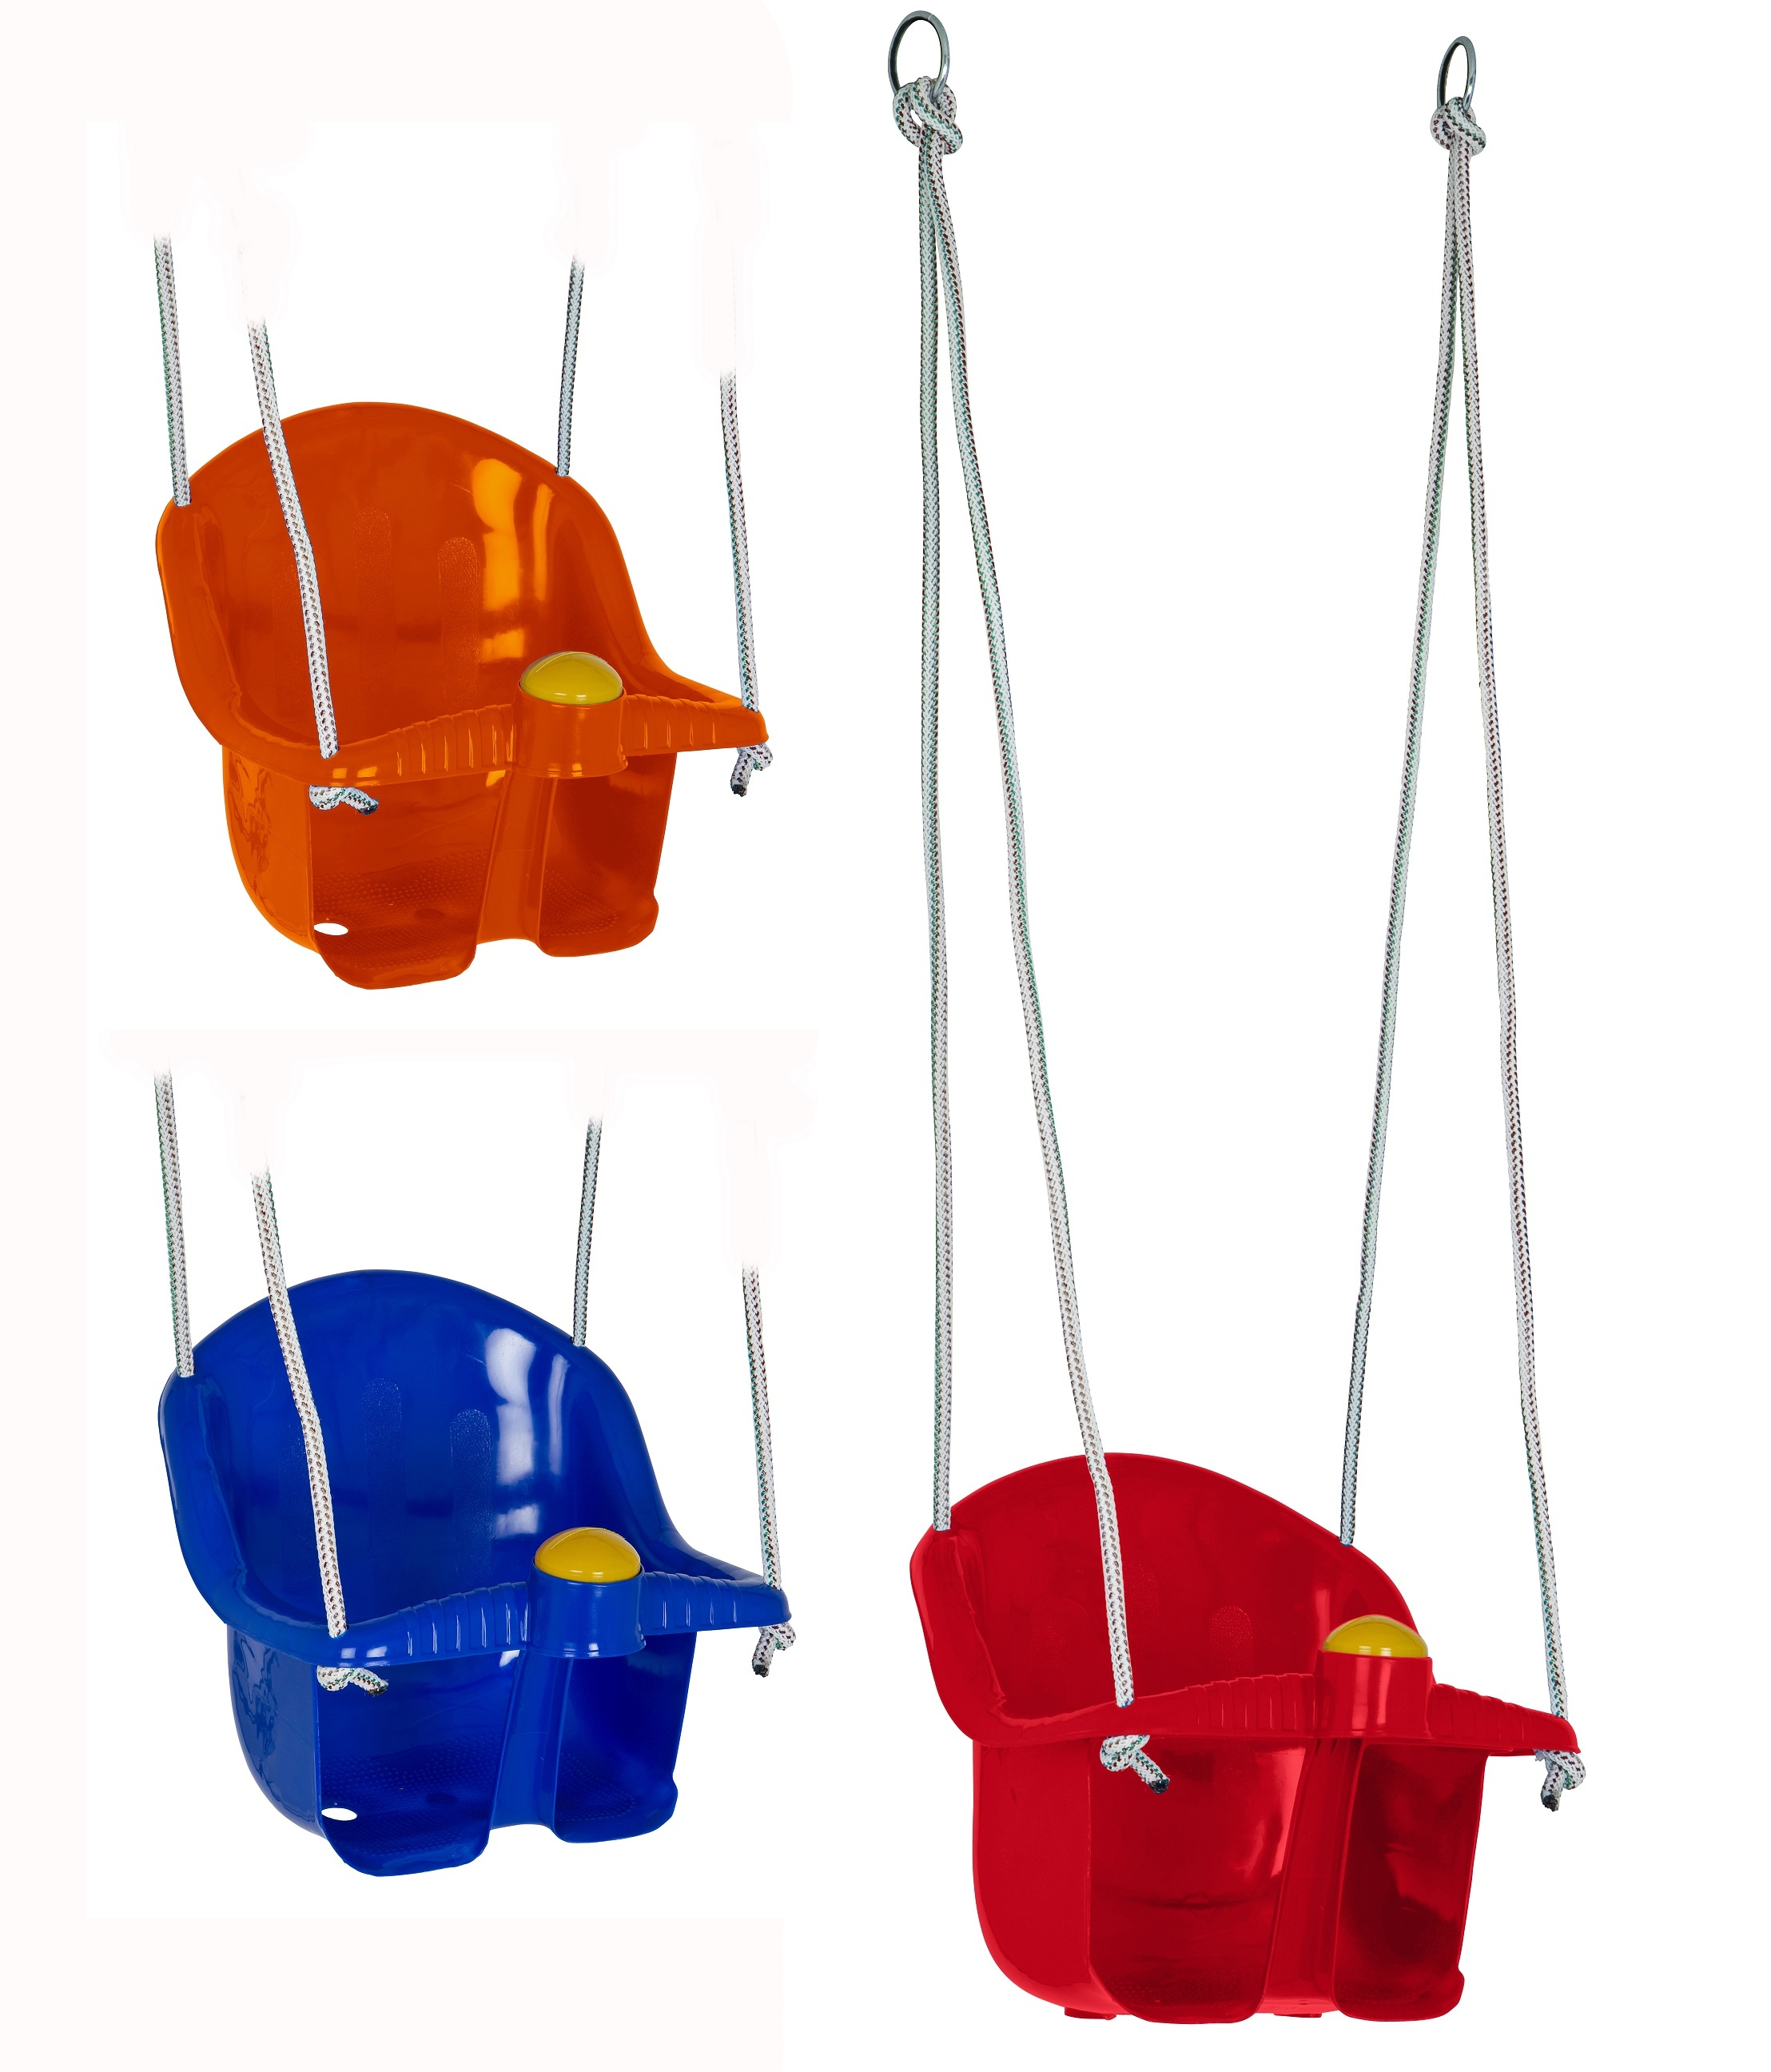 Childrens Plastic Rope Swing Seat With Rope U0026 Mounting Rings Kids Outdoor  Garden